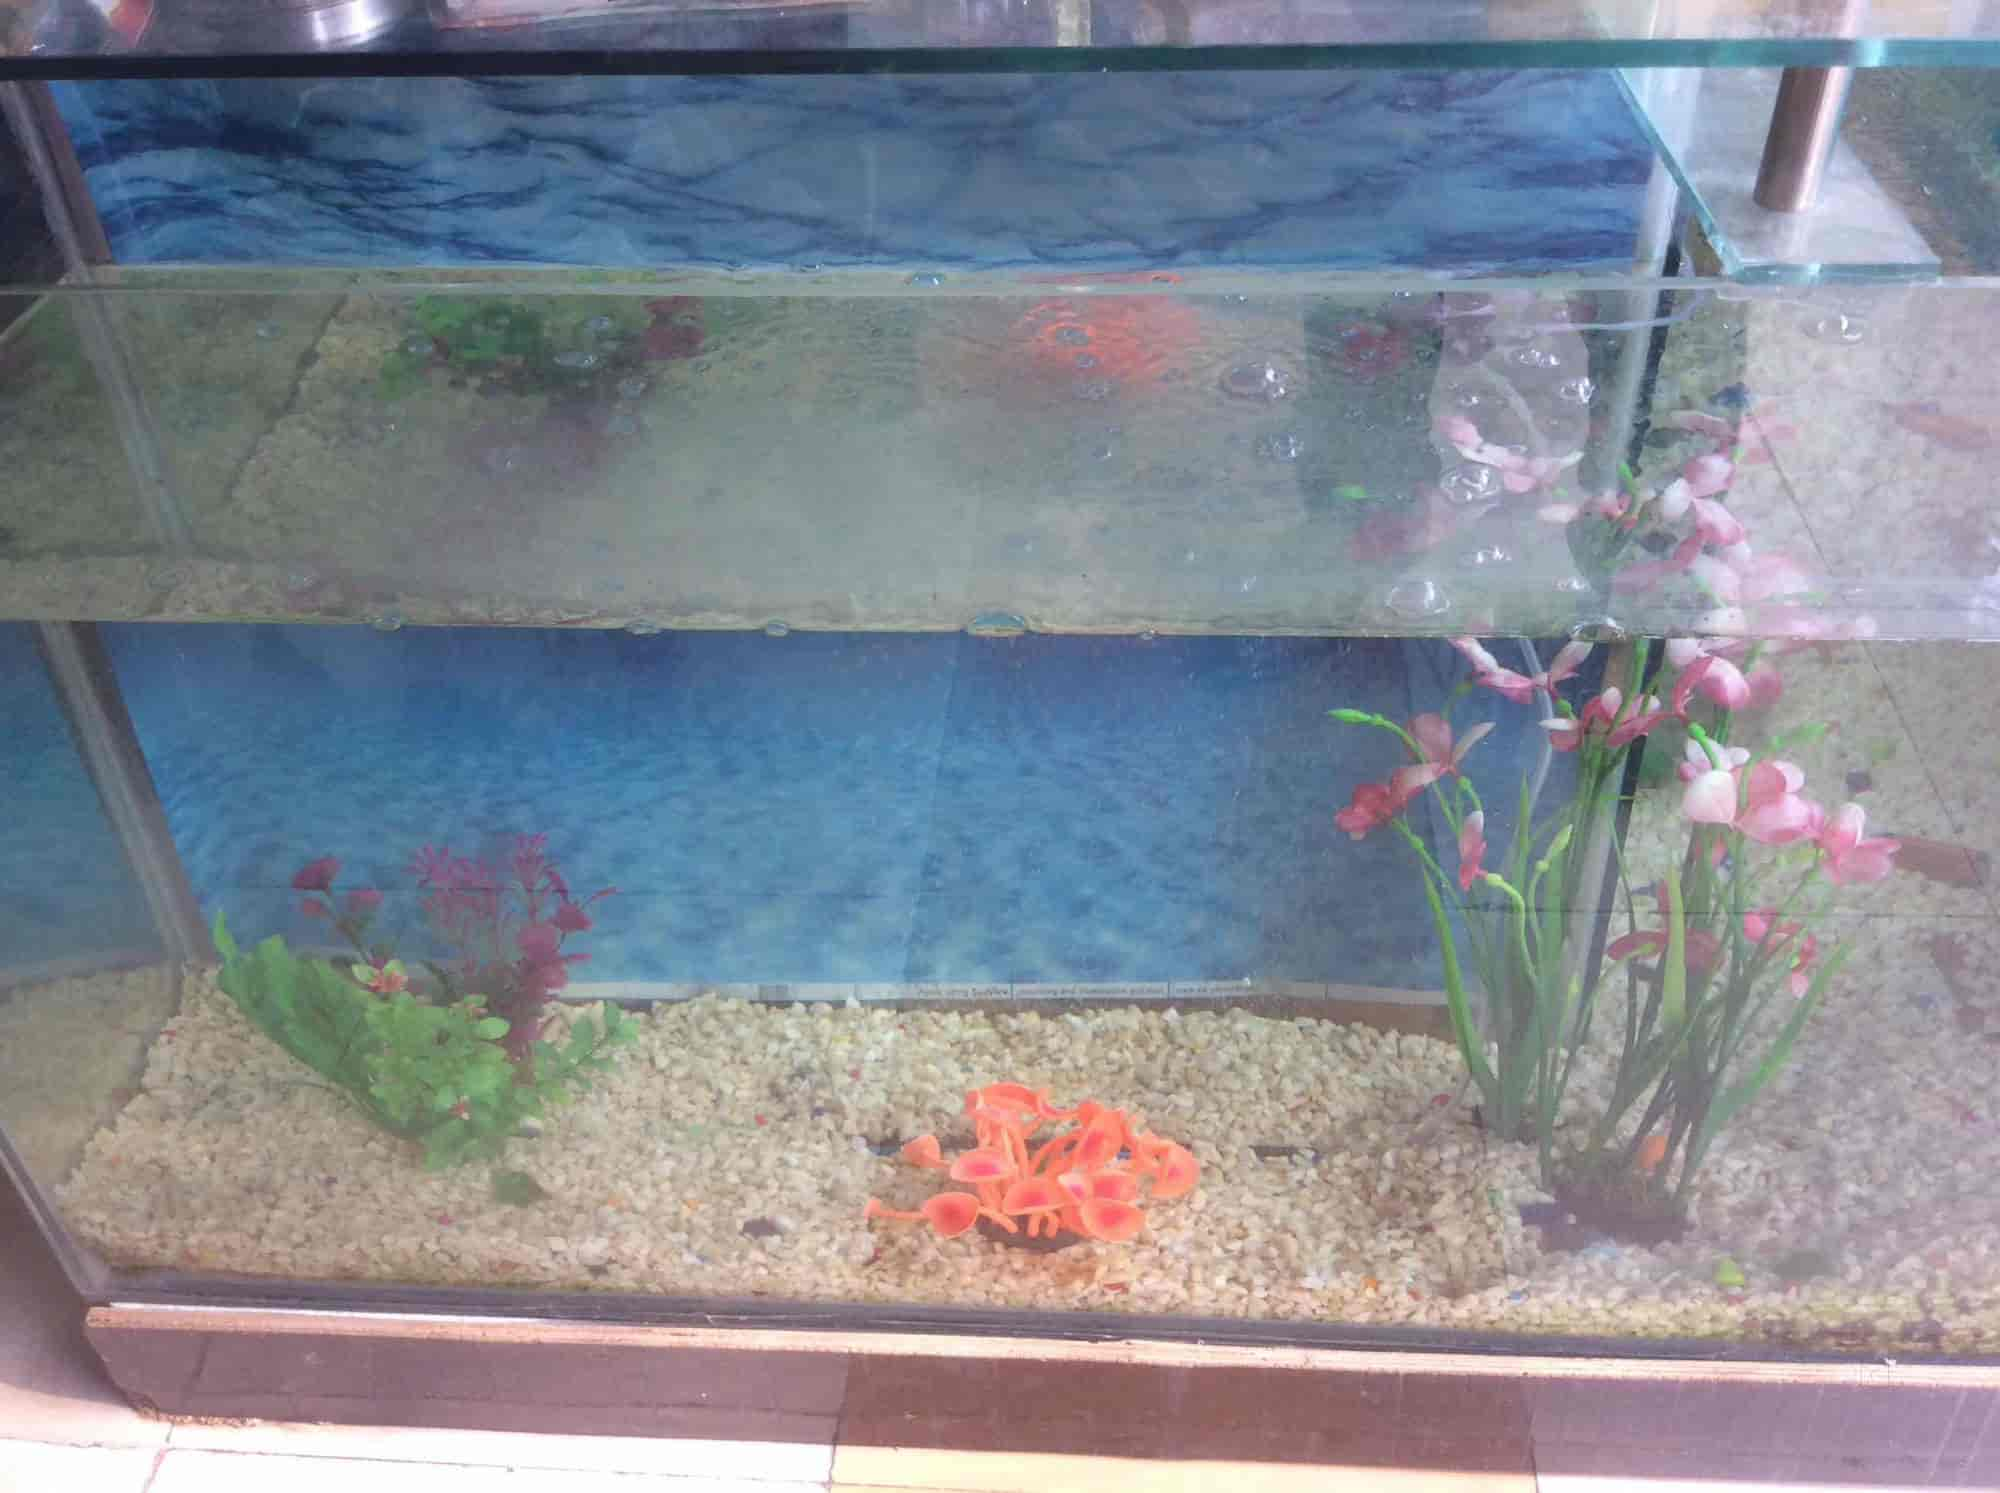 The Ultimate Fish Aquarium Pet Care Shop s Civil Lines Jhansi